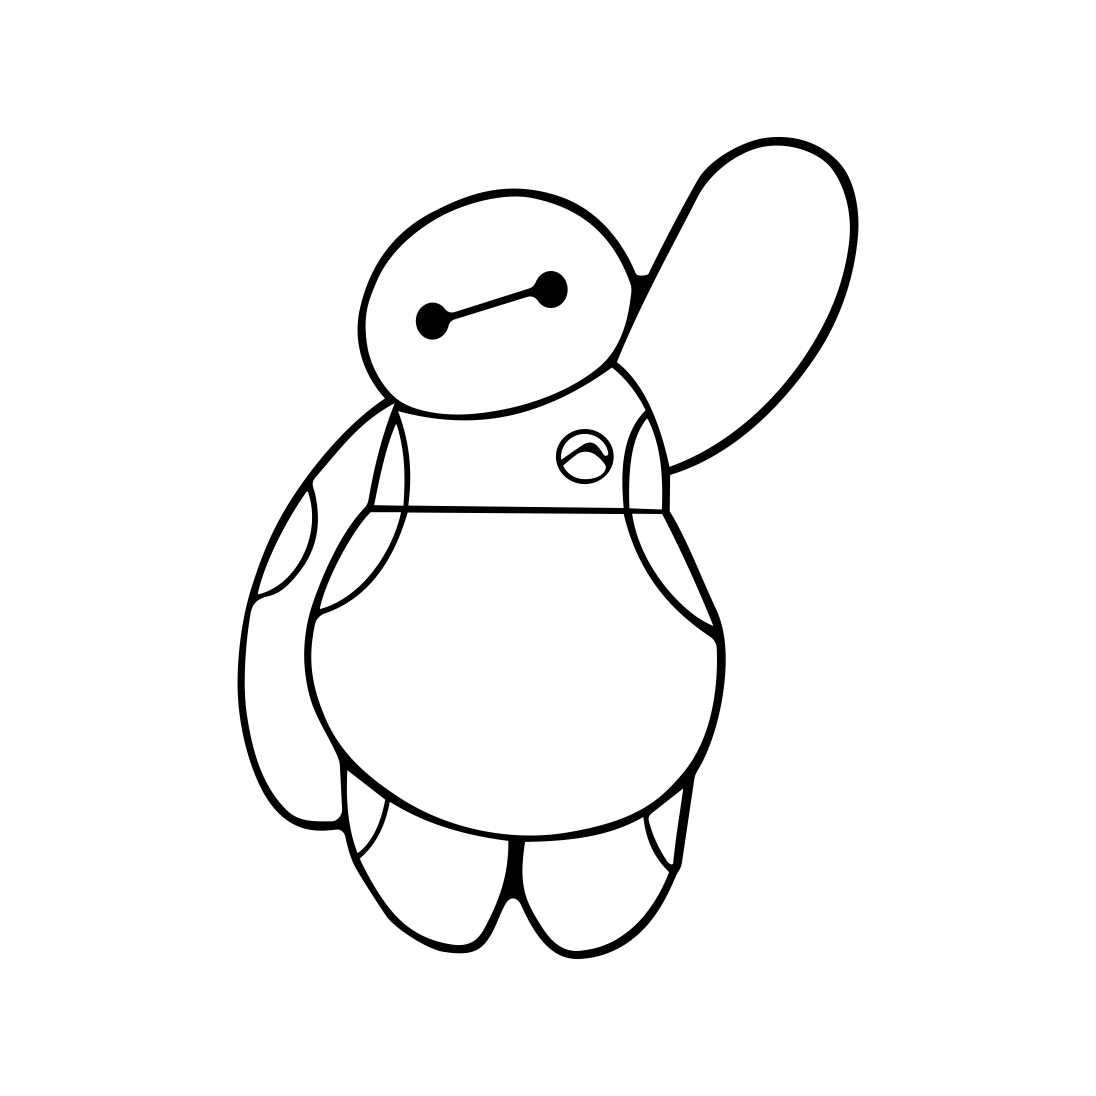 Disney Baymax Big Hero 6 graphics design SVG by